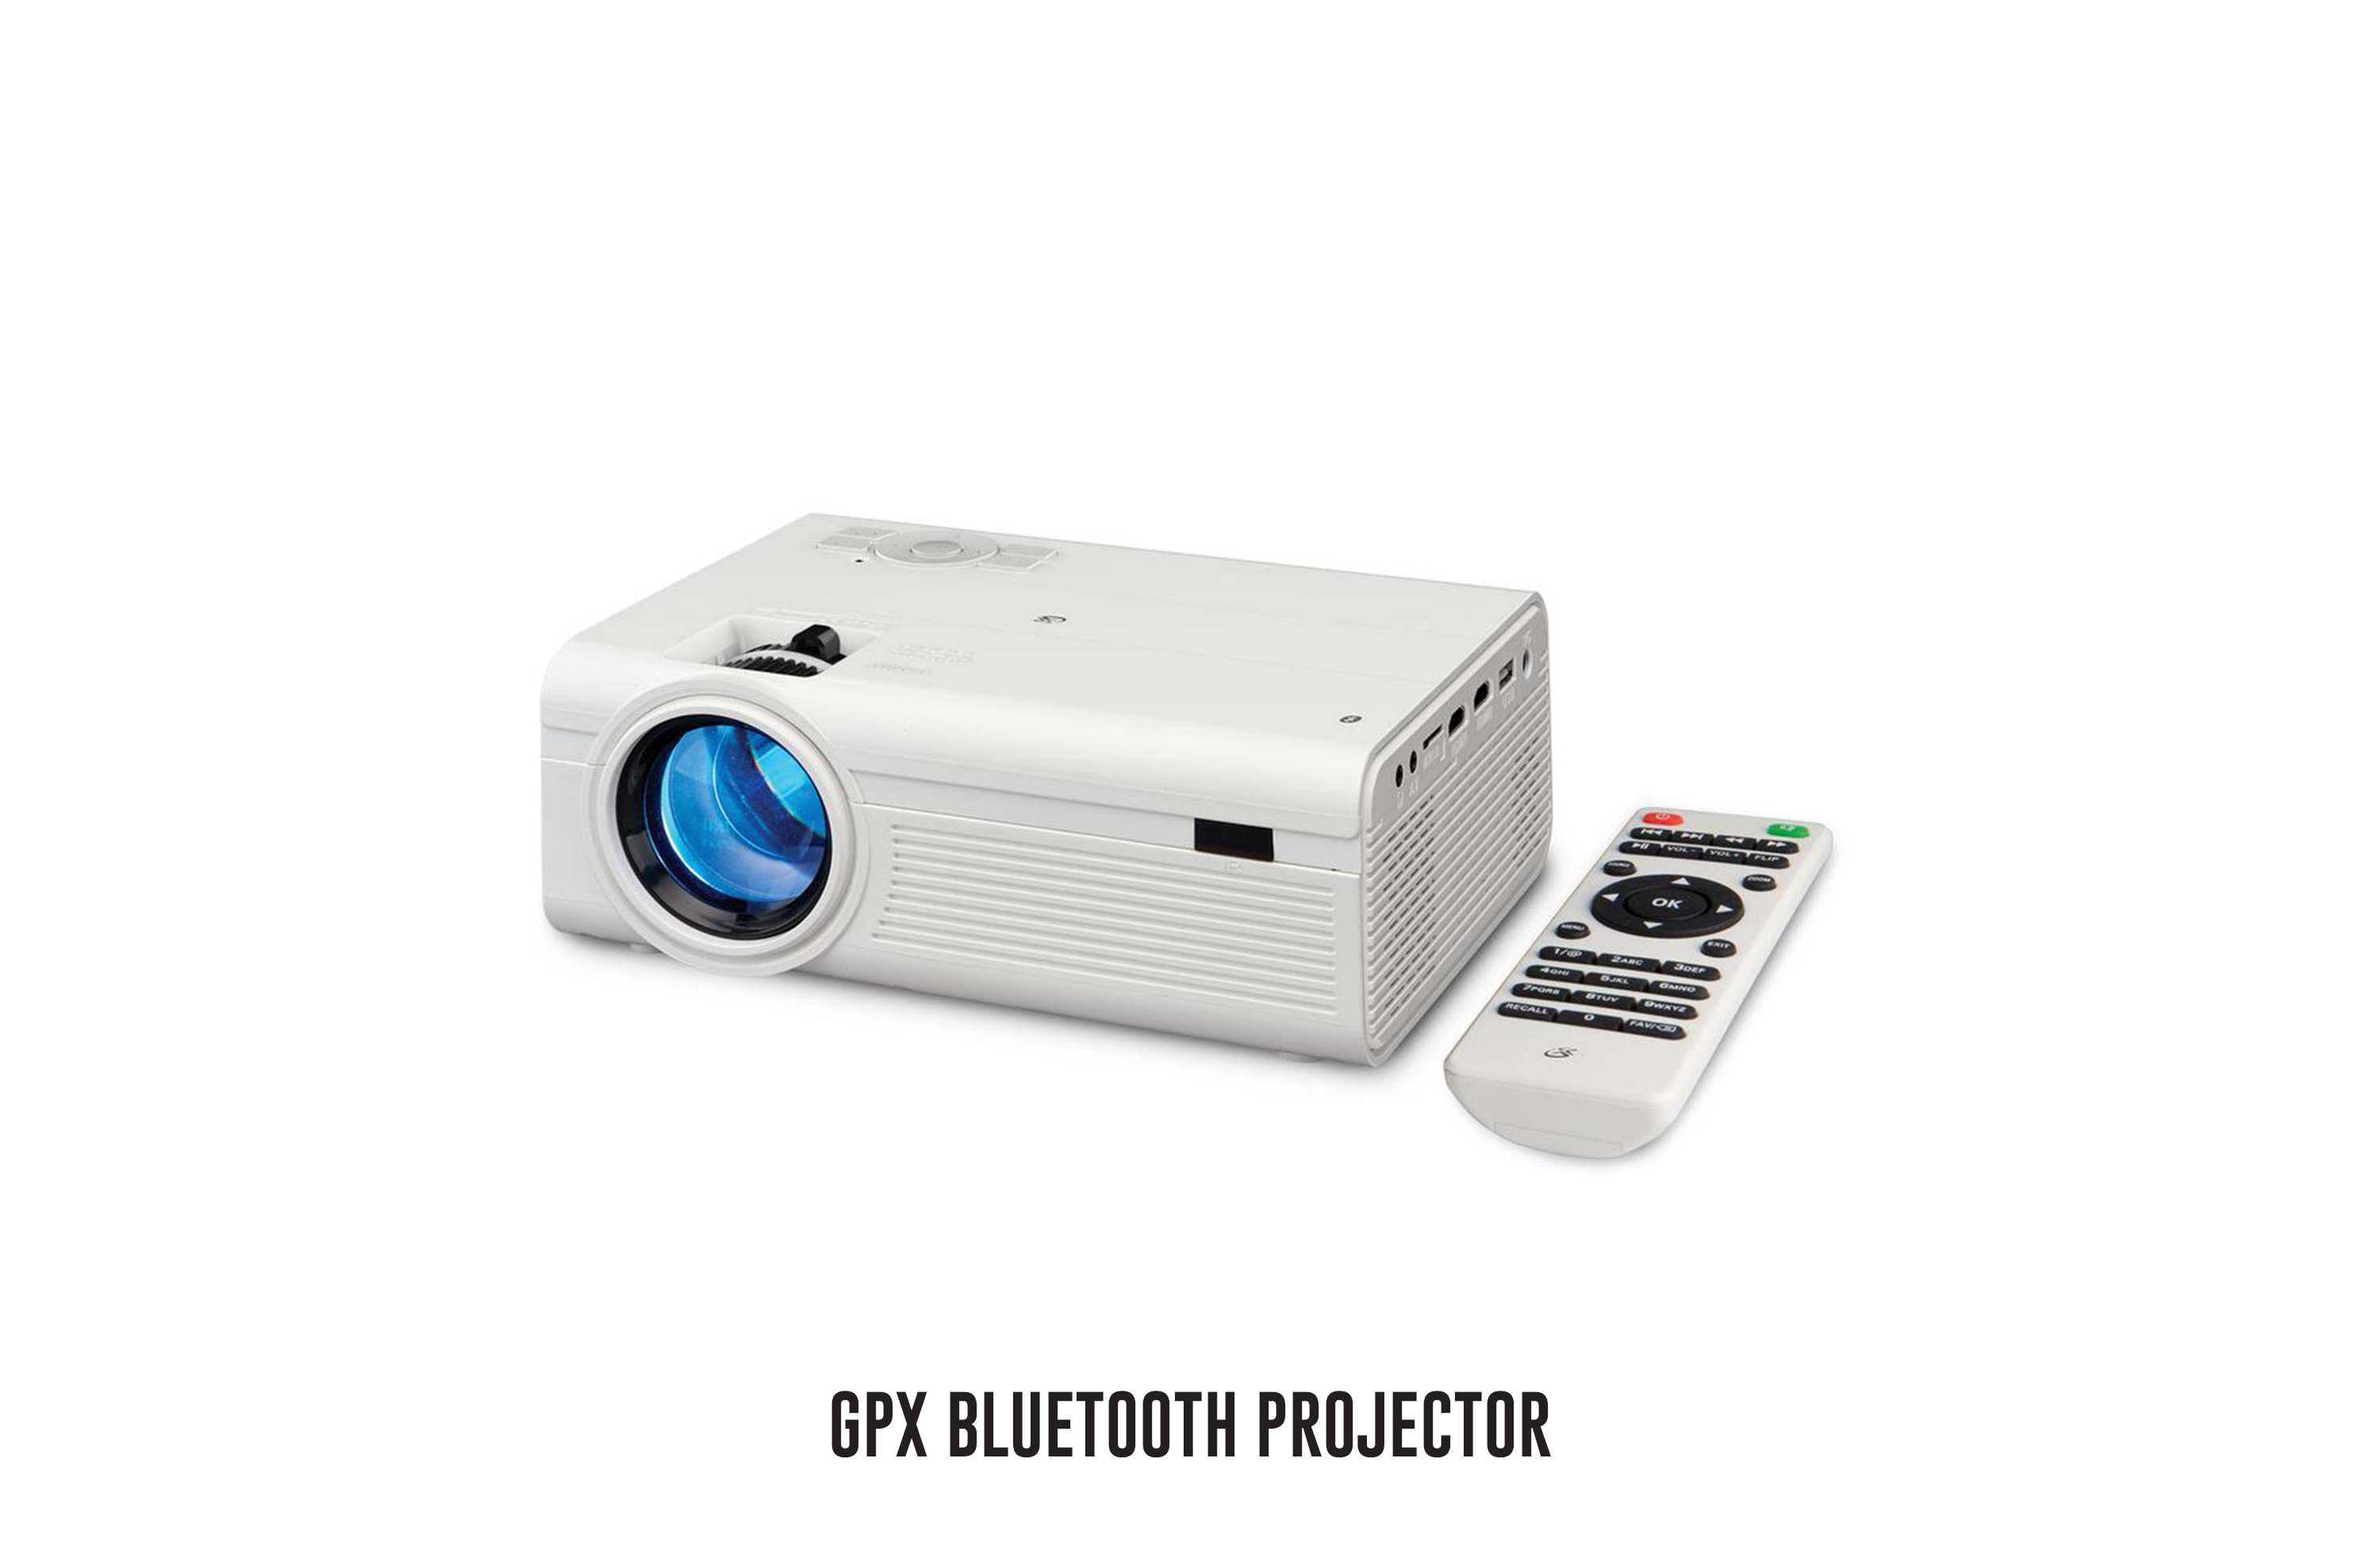 GPX Bluetooth projector